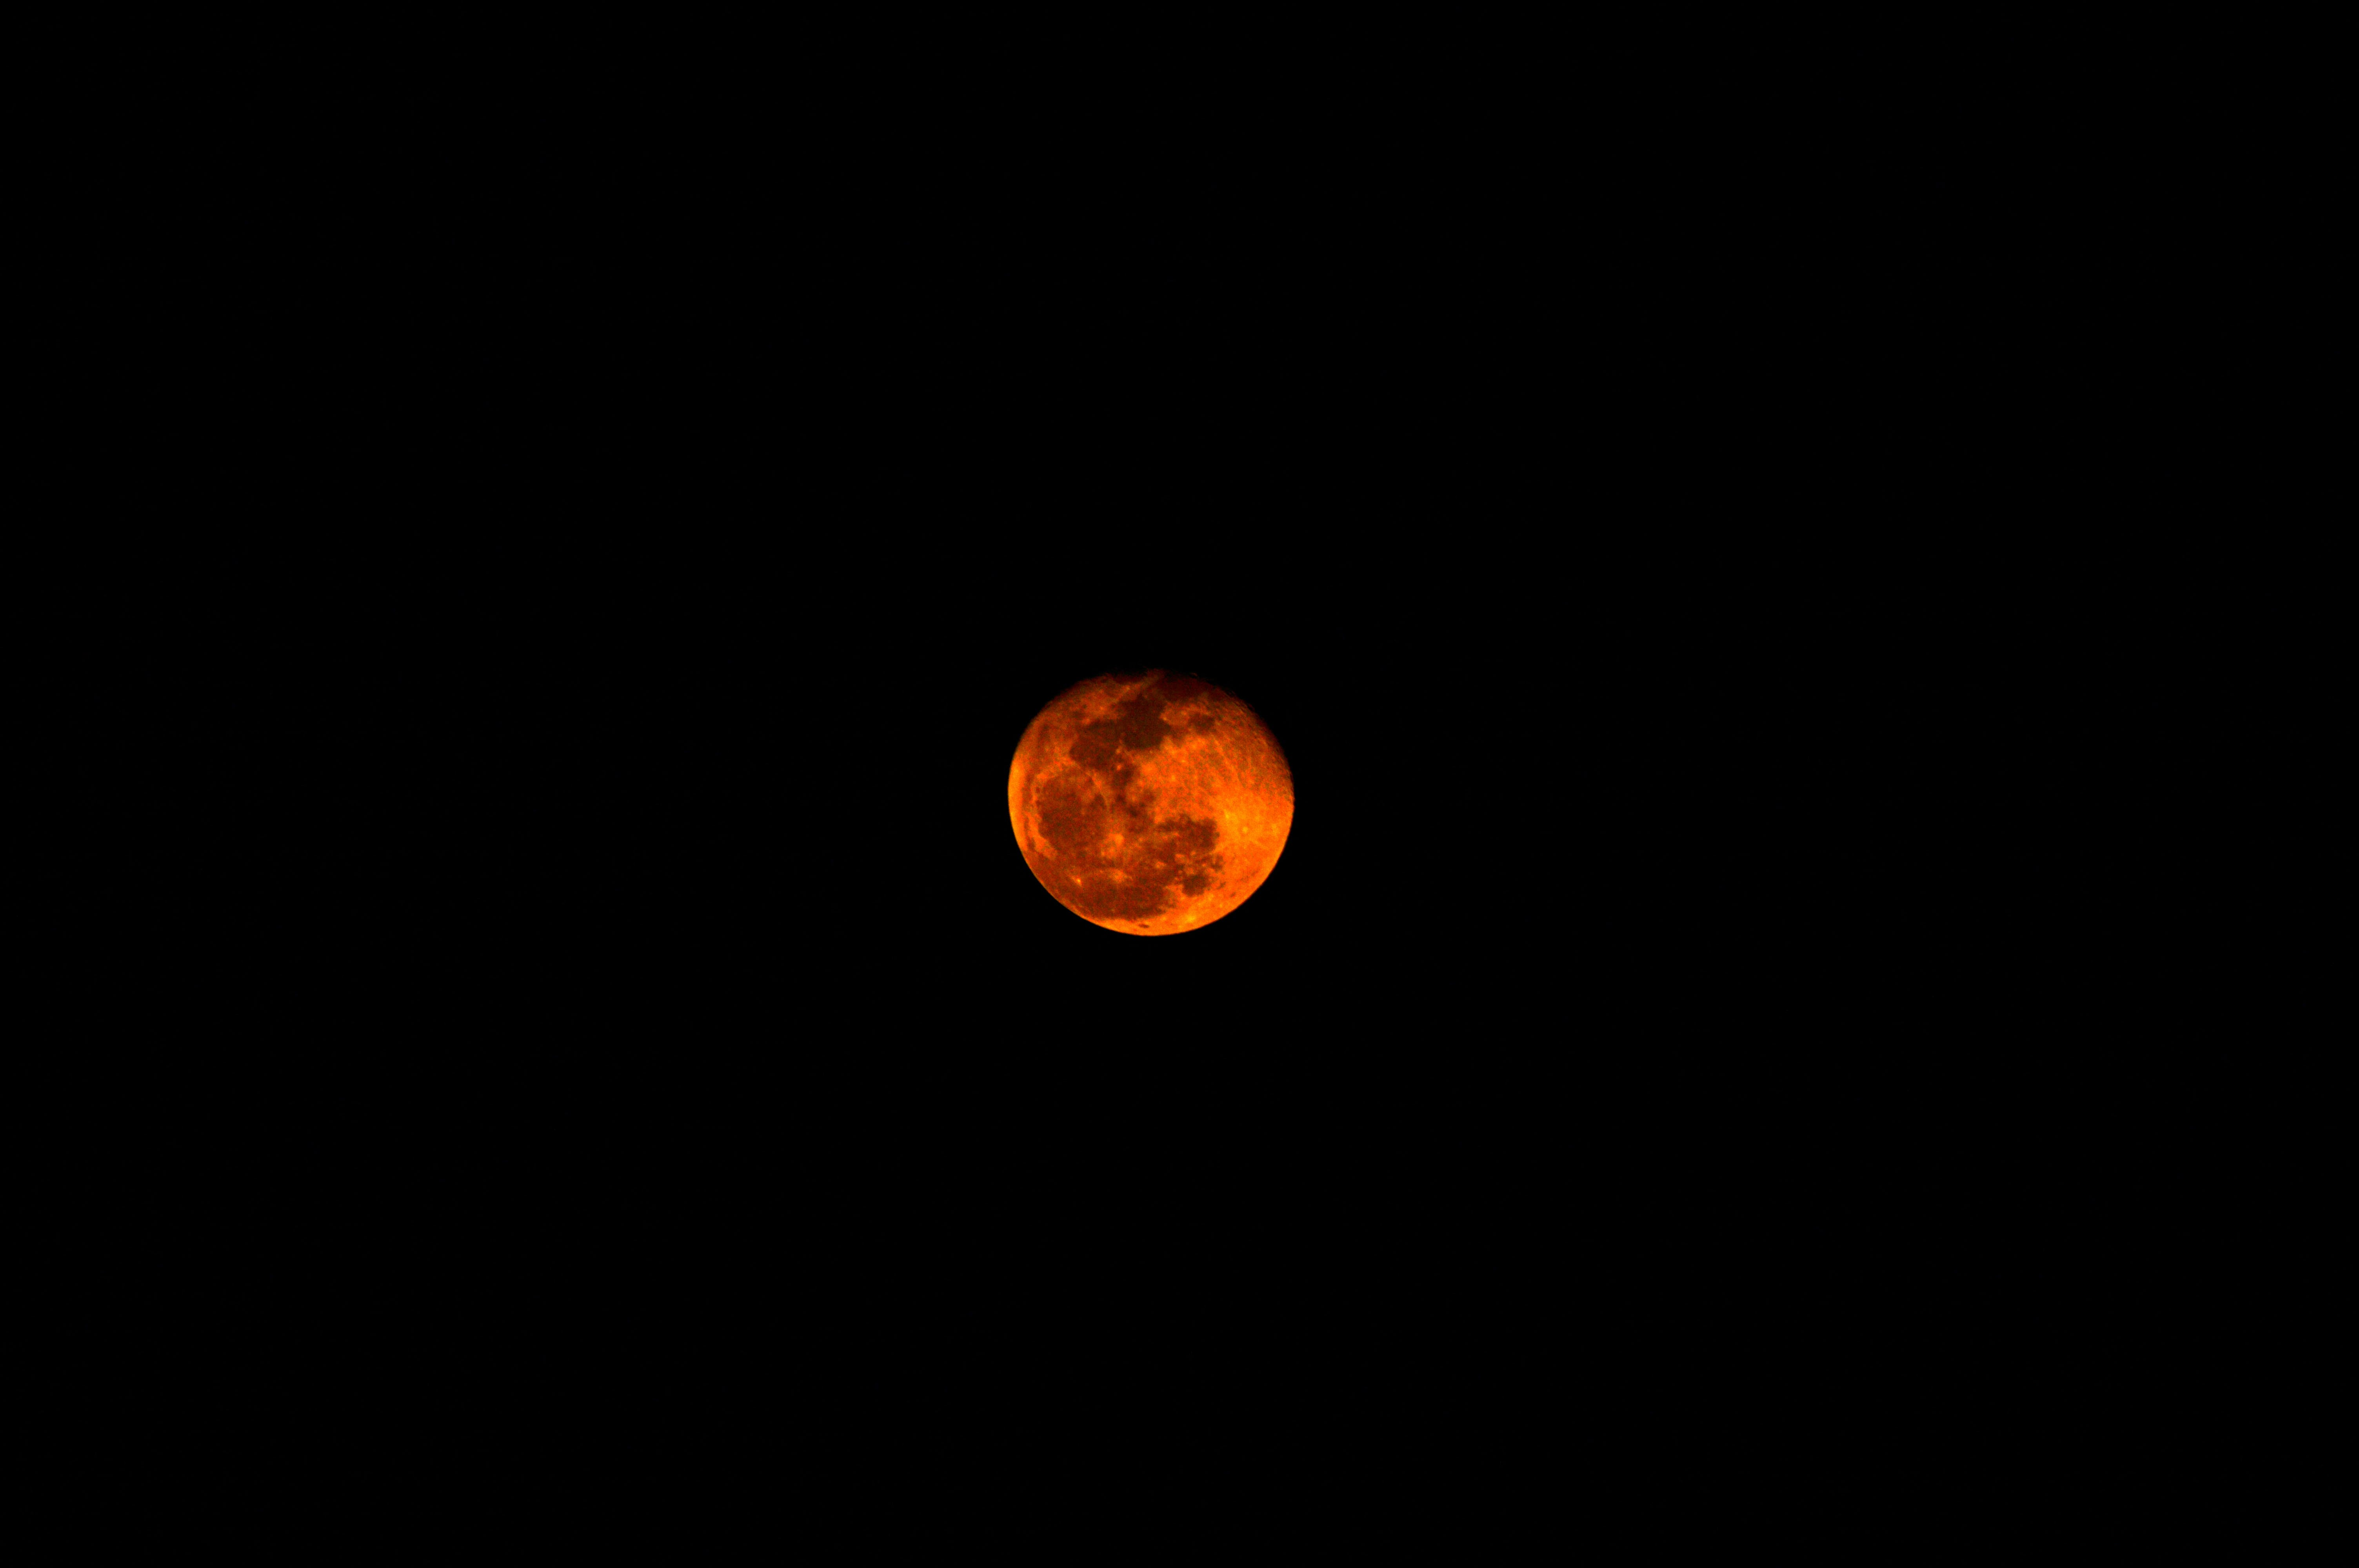 Free stock photo of blood moon, christmas moon, large moon, love moon